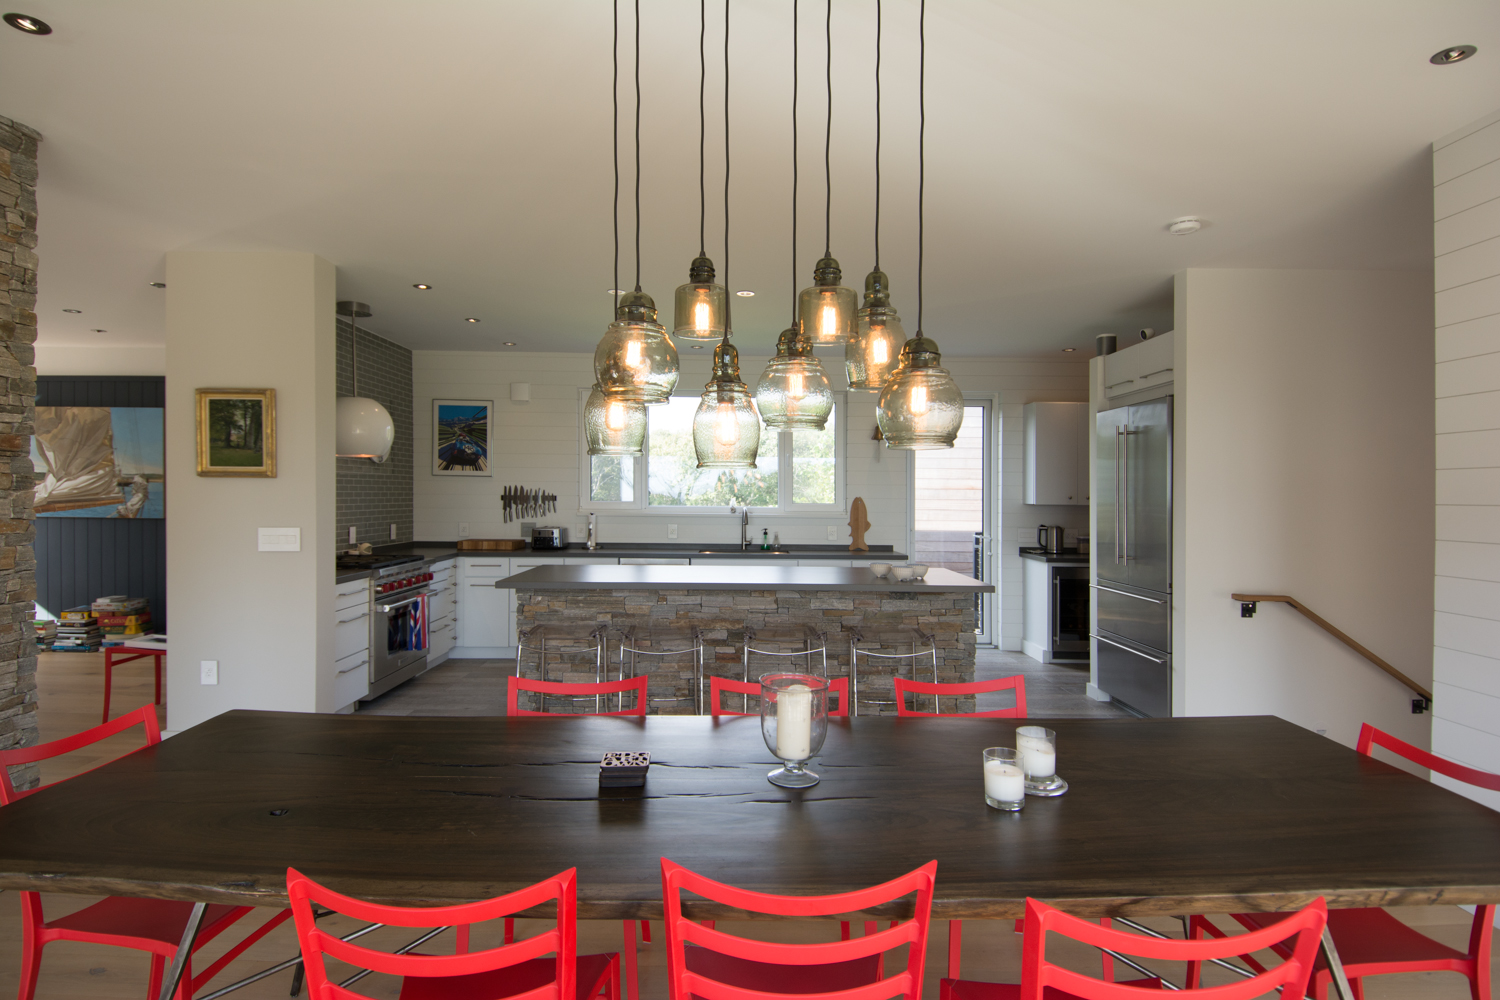 Open plan dining room and kitchen with red chairs and pendant lighting